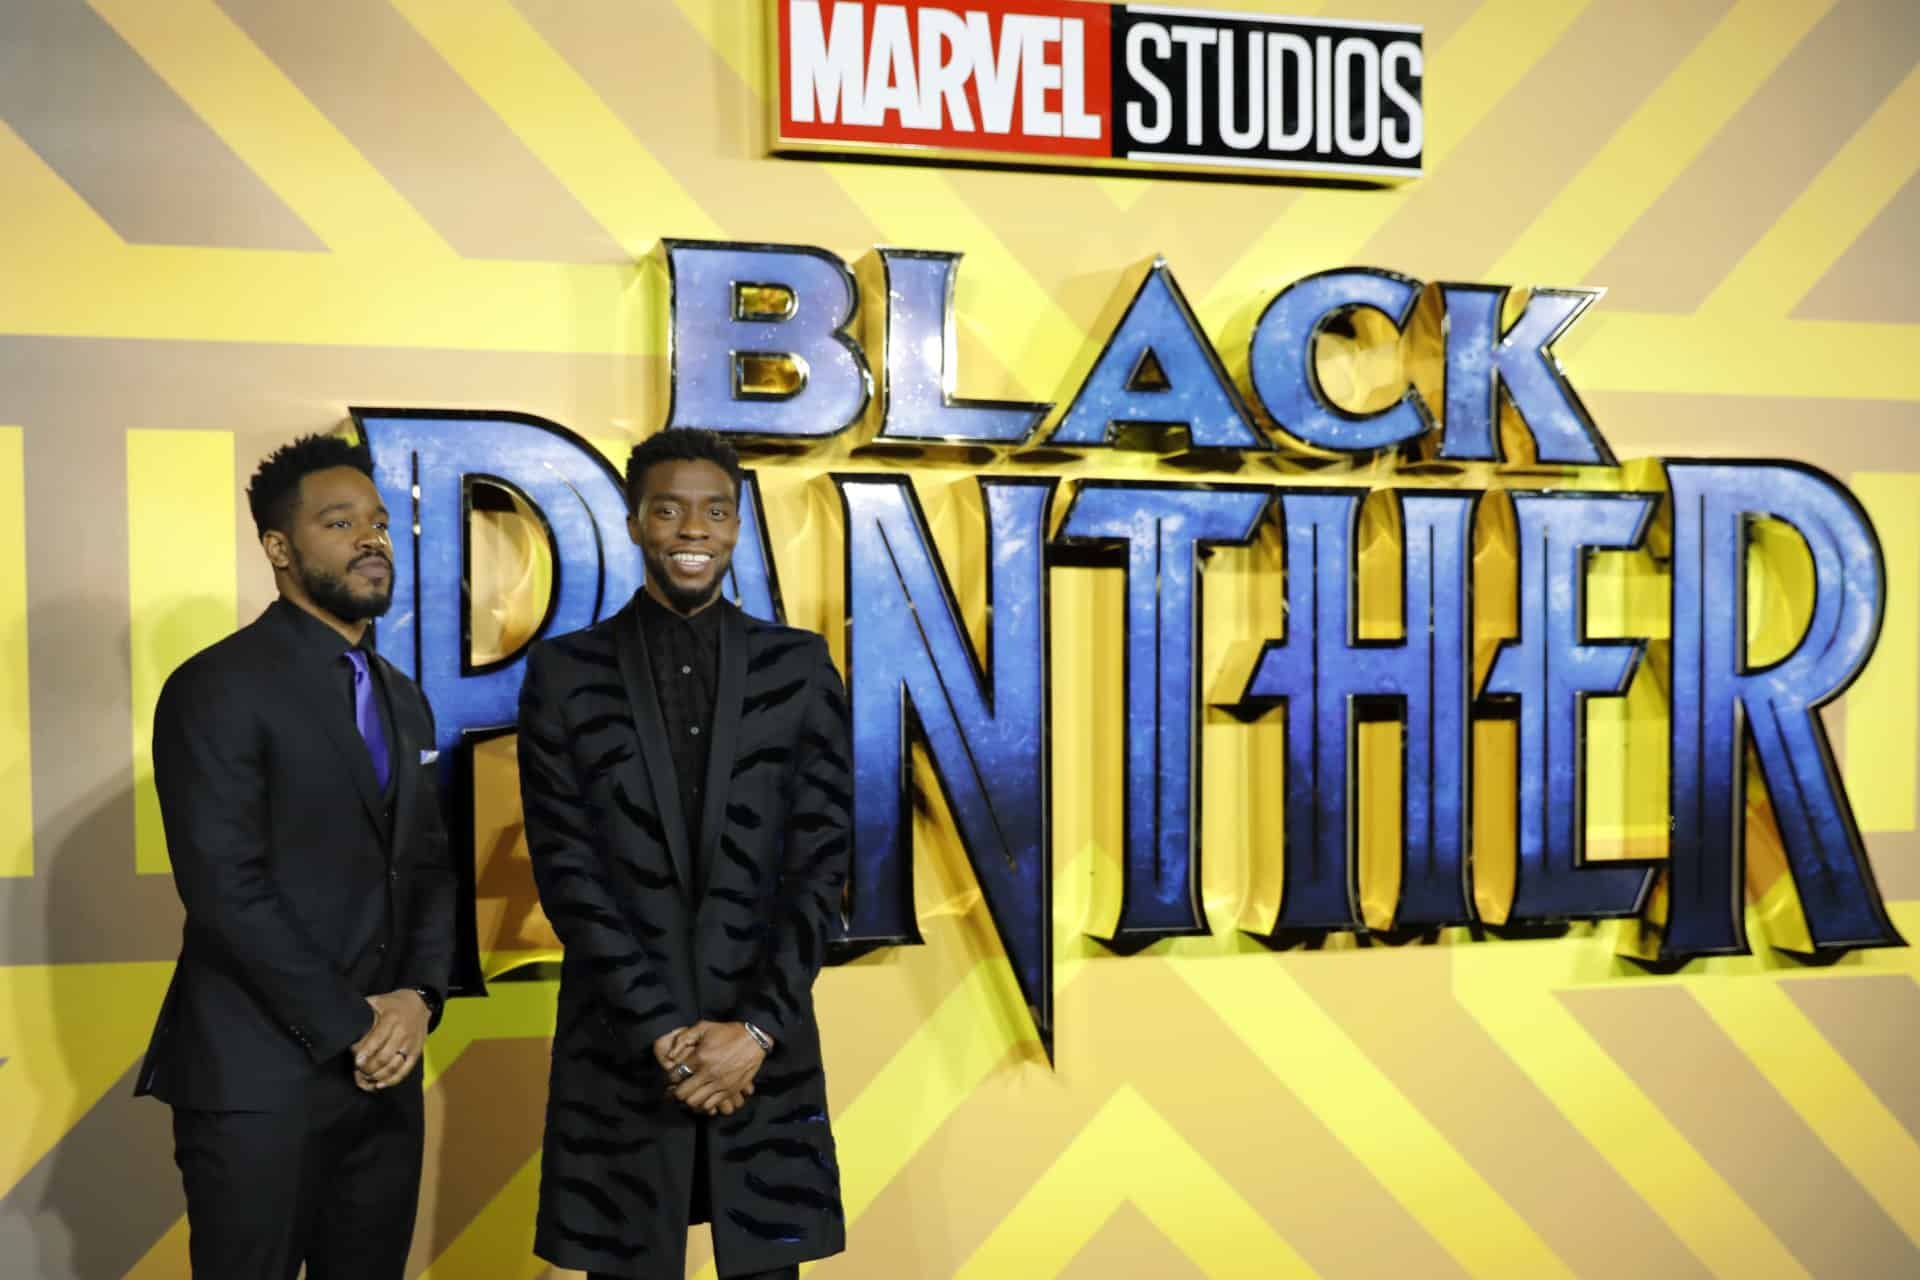 Disney Director Ryan Coogler Says 'Black Panther II' Won't Move Production from Georgia, Pushes Dem's Voter ID Gutting Bill 1